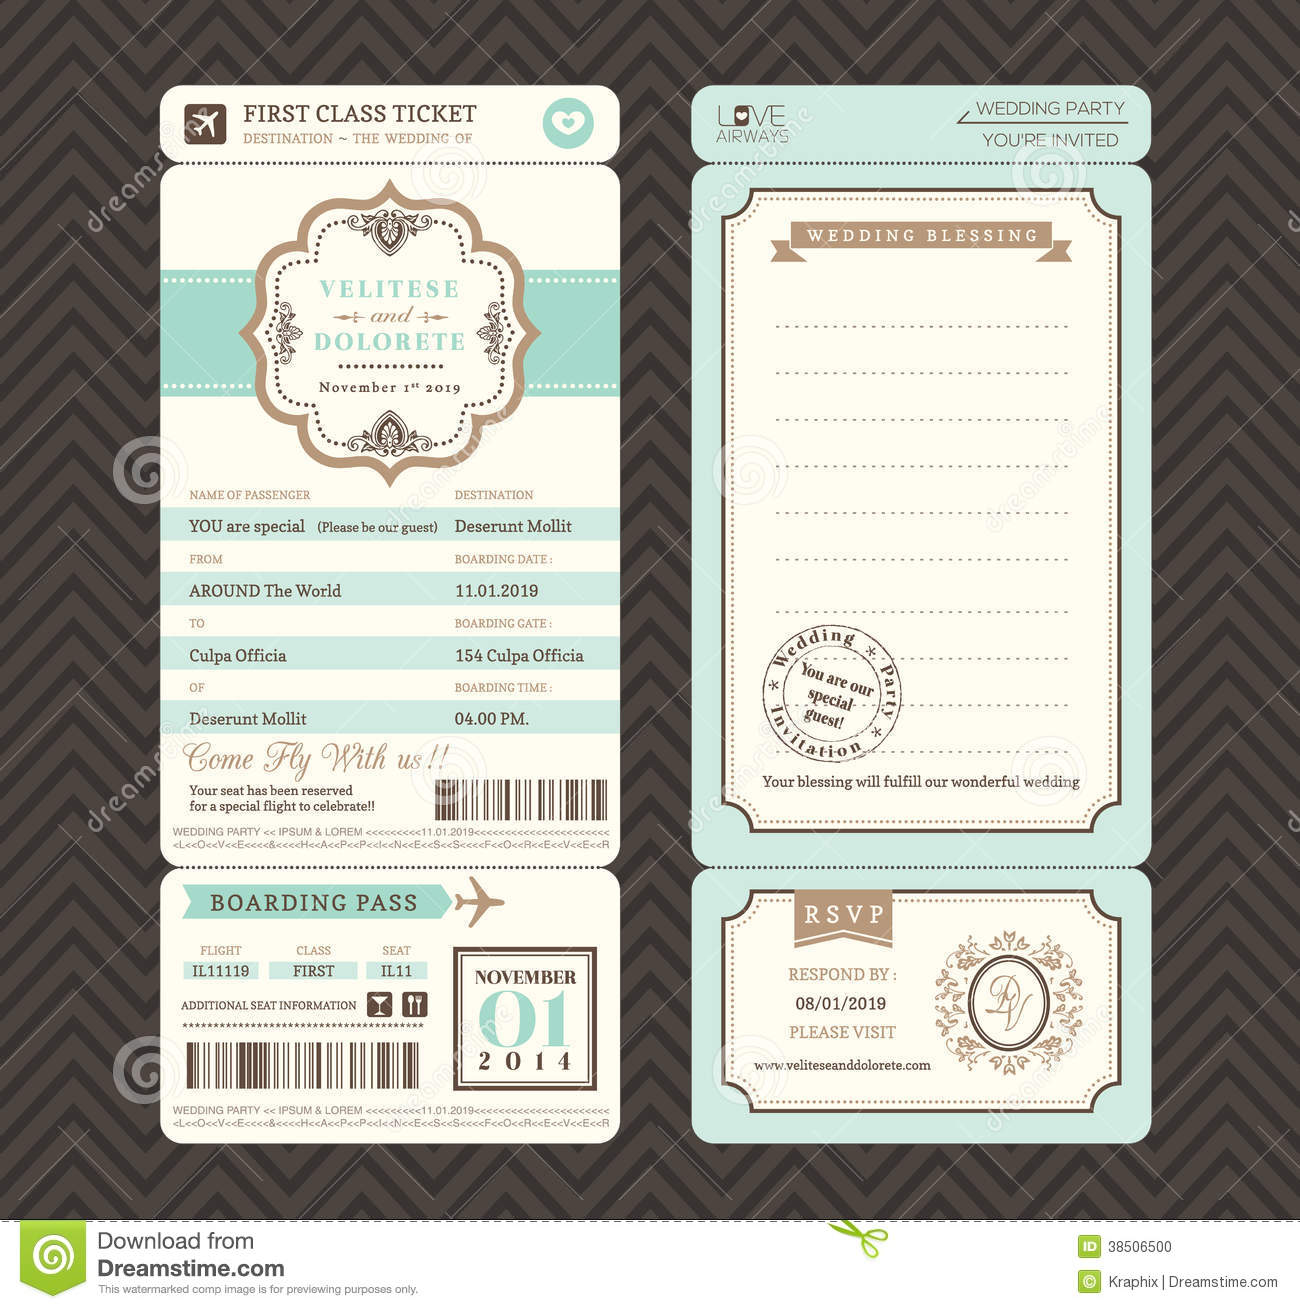 Wedding Ticket Invitation Template. Boise State Graduate Programs. Policy And Procedure Template. Editable Birthday Invitations Template Free. Employee Holiday Schedule Template. Marketing Communications Plan Template. Dental Hygienist Resume Template. Weekly Work Schedule Template Pdf. Instagram Photo Frame Template